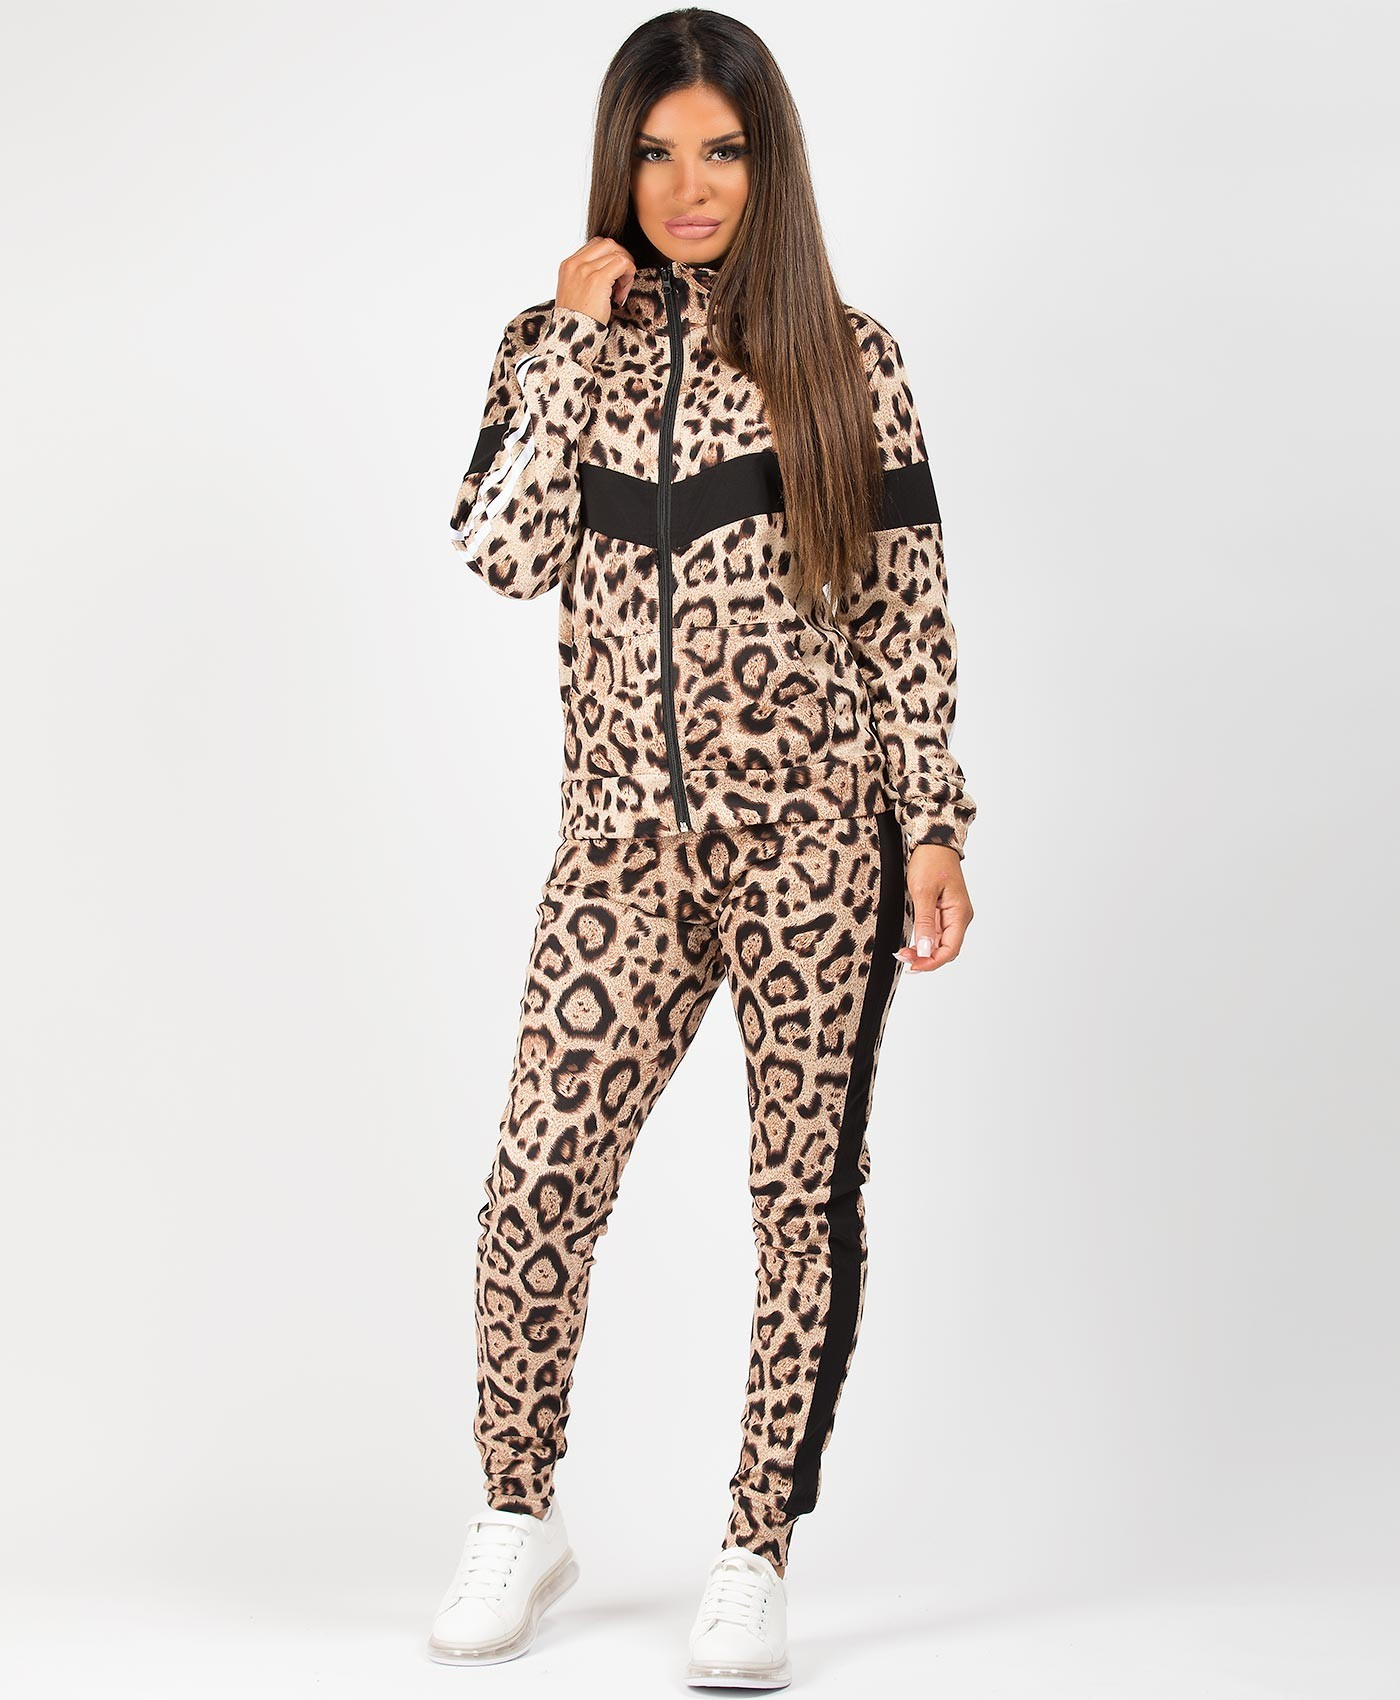 Black-Leopard-Print-Panel-Side-Stripe-Tracksuit-Loungewear-Set-1